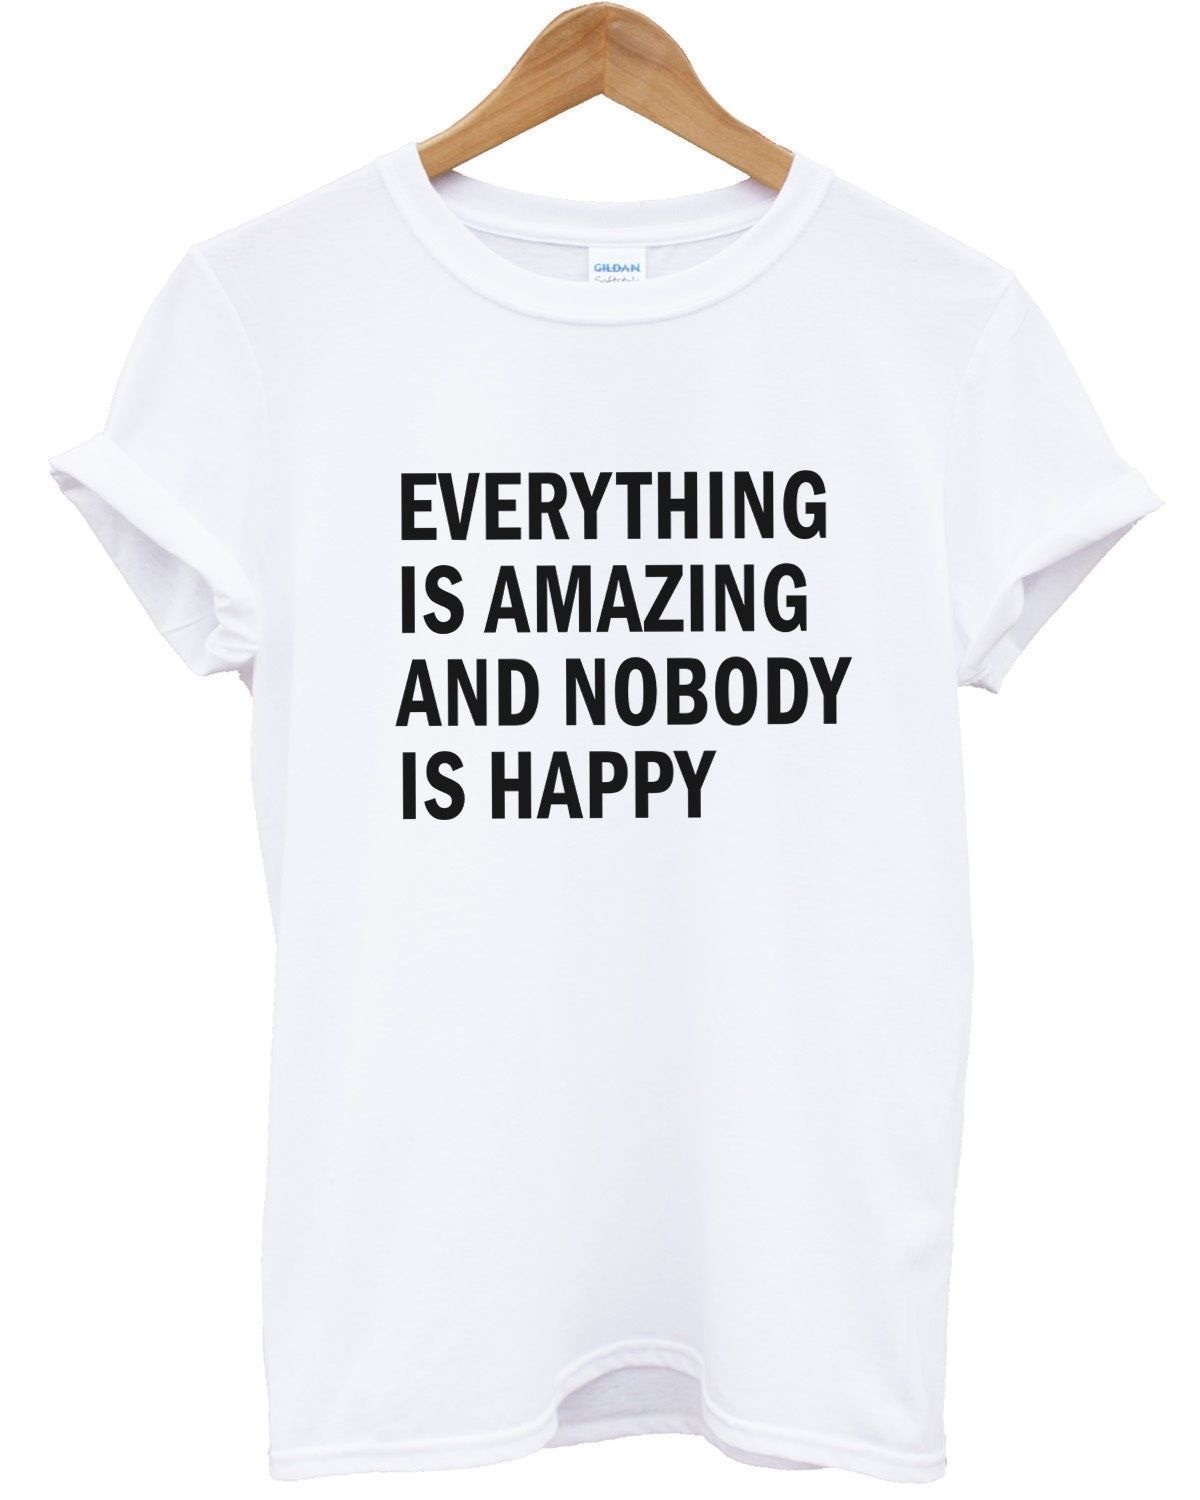 EVERYTHING IS AMAZING AND NOBODY IS HAPPY T SHIRT TOP HIPSTER MEN WOMEN BLOG Custom Printed Tshirt,100% Cotton for Man image